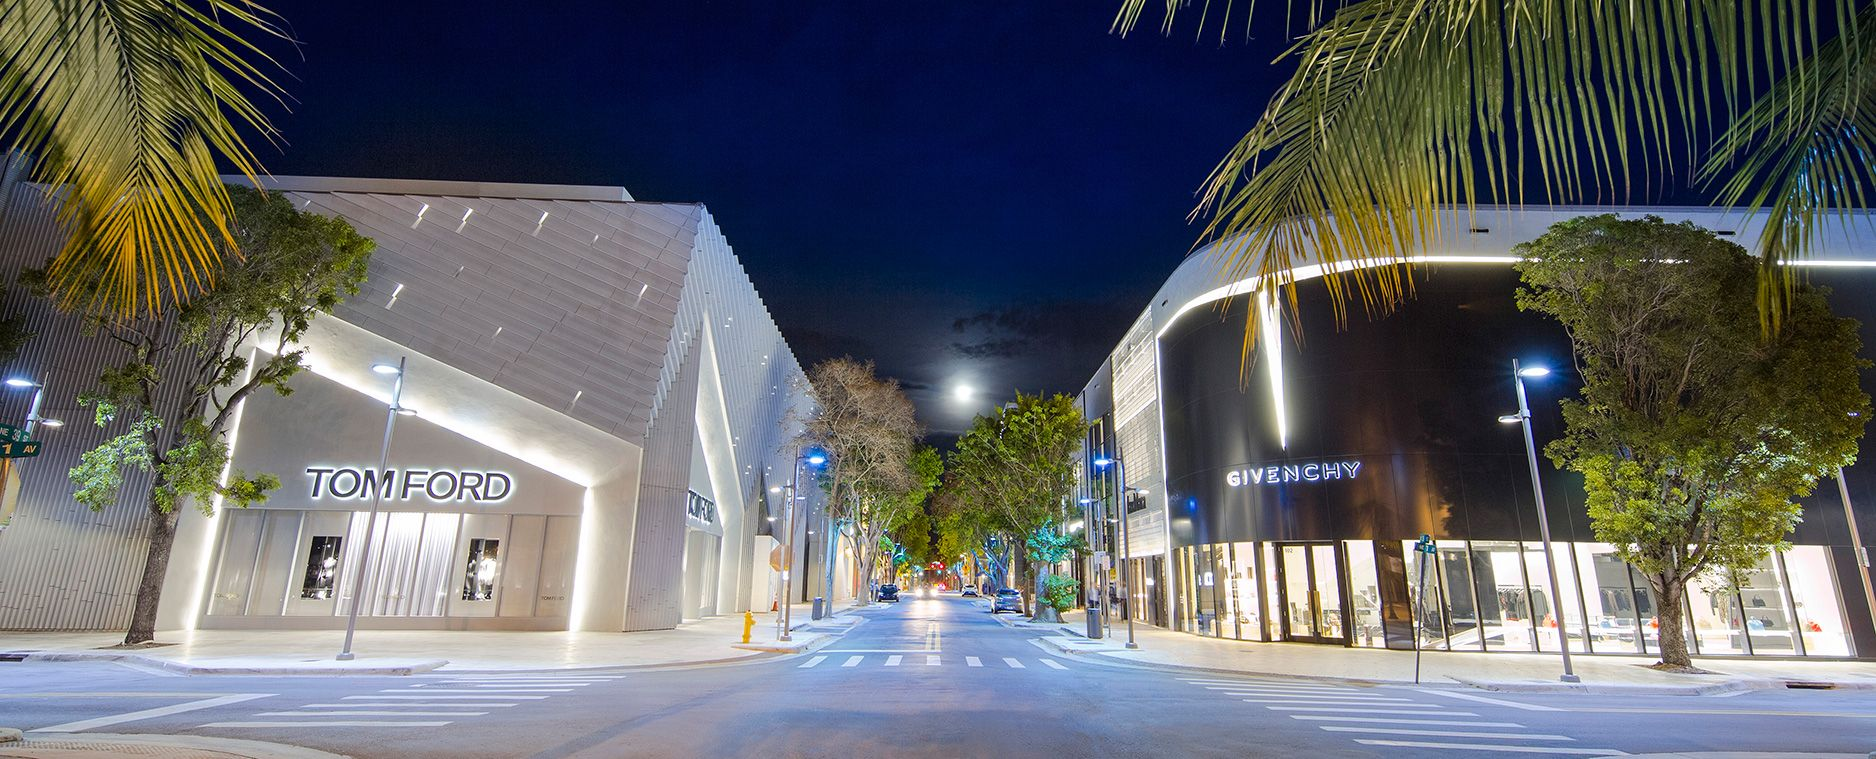 The Miami Design District Is A Creative Neighborhood And Luxury Shopping  Destination.